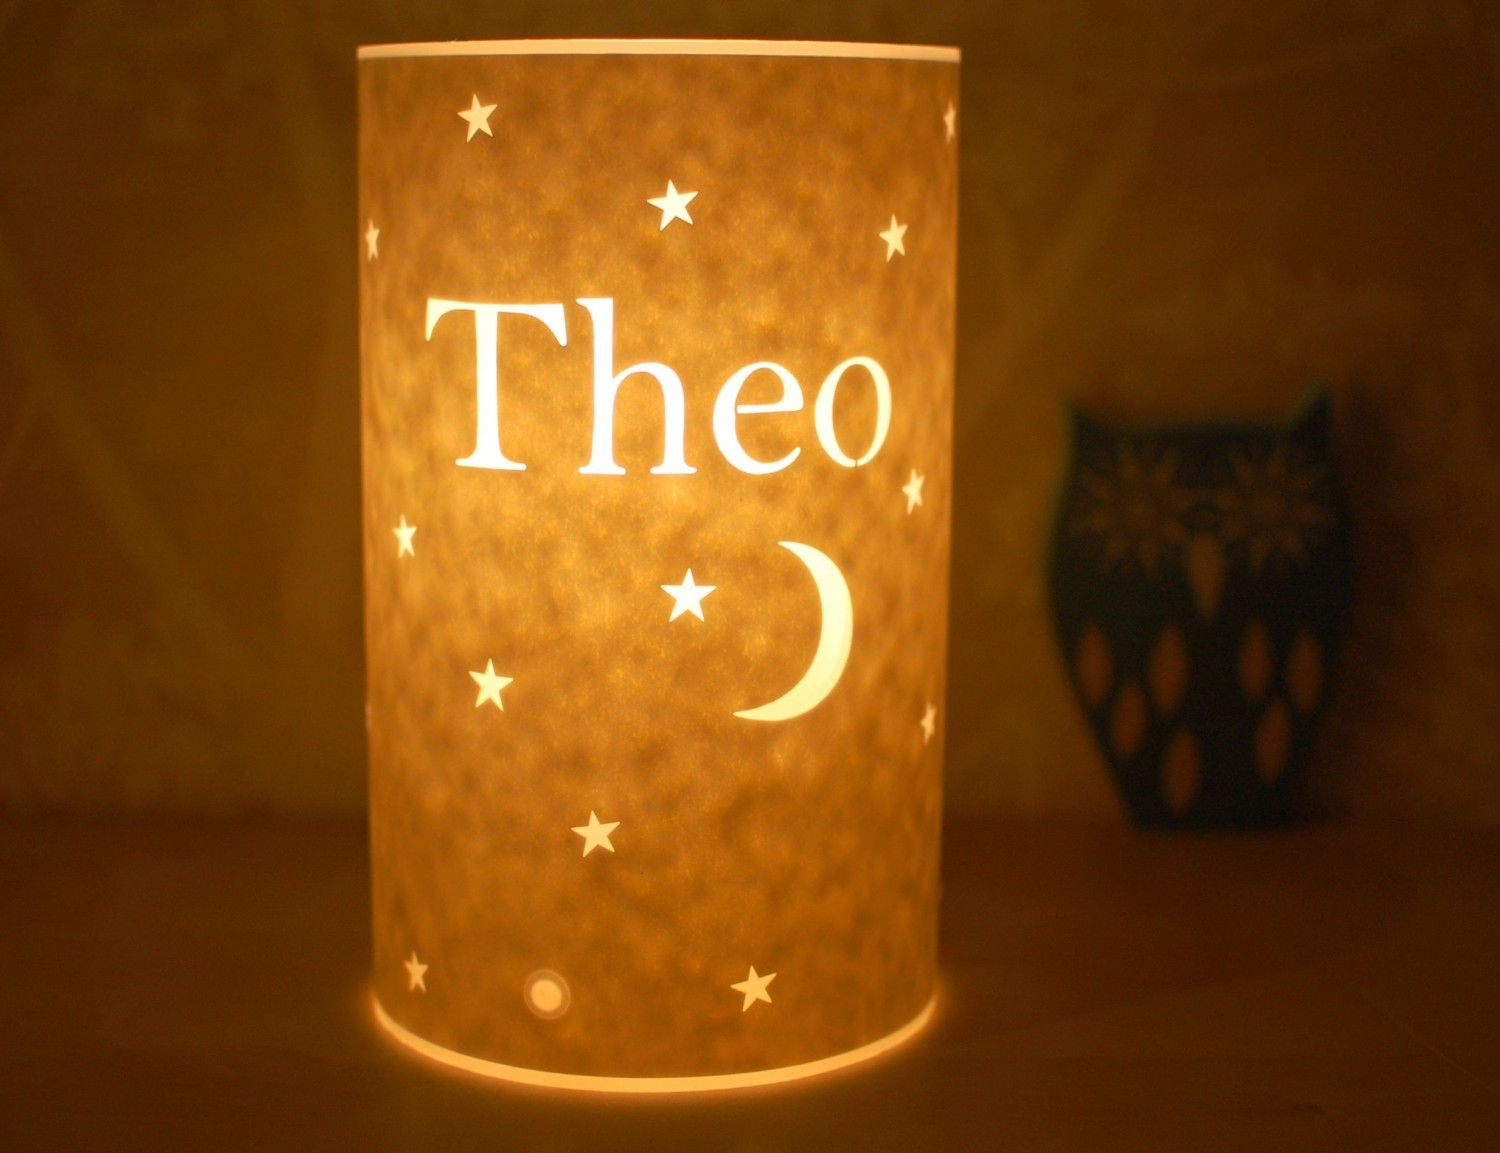 Personalised table lamp by Hannahnunn on Etsy https://www.etsy.com/listing/54763443/personalised-table-lamp